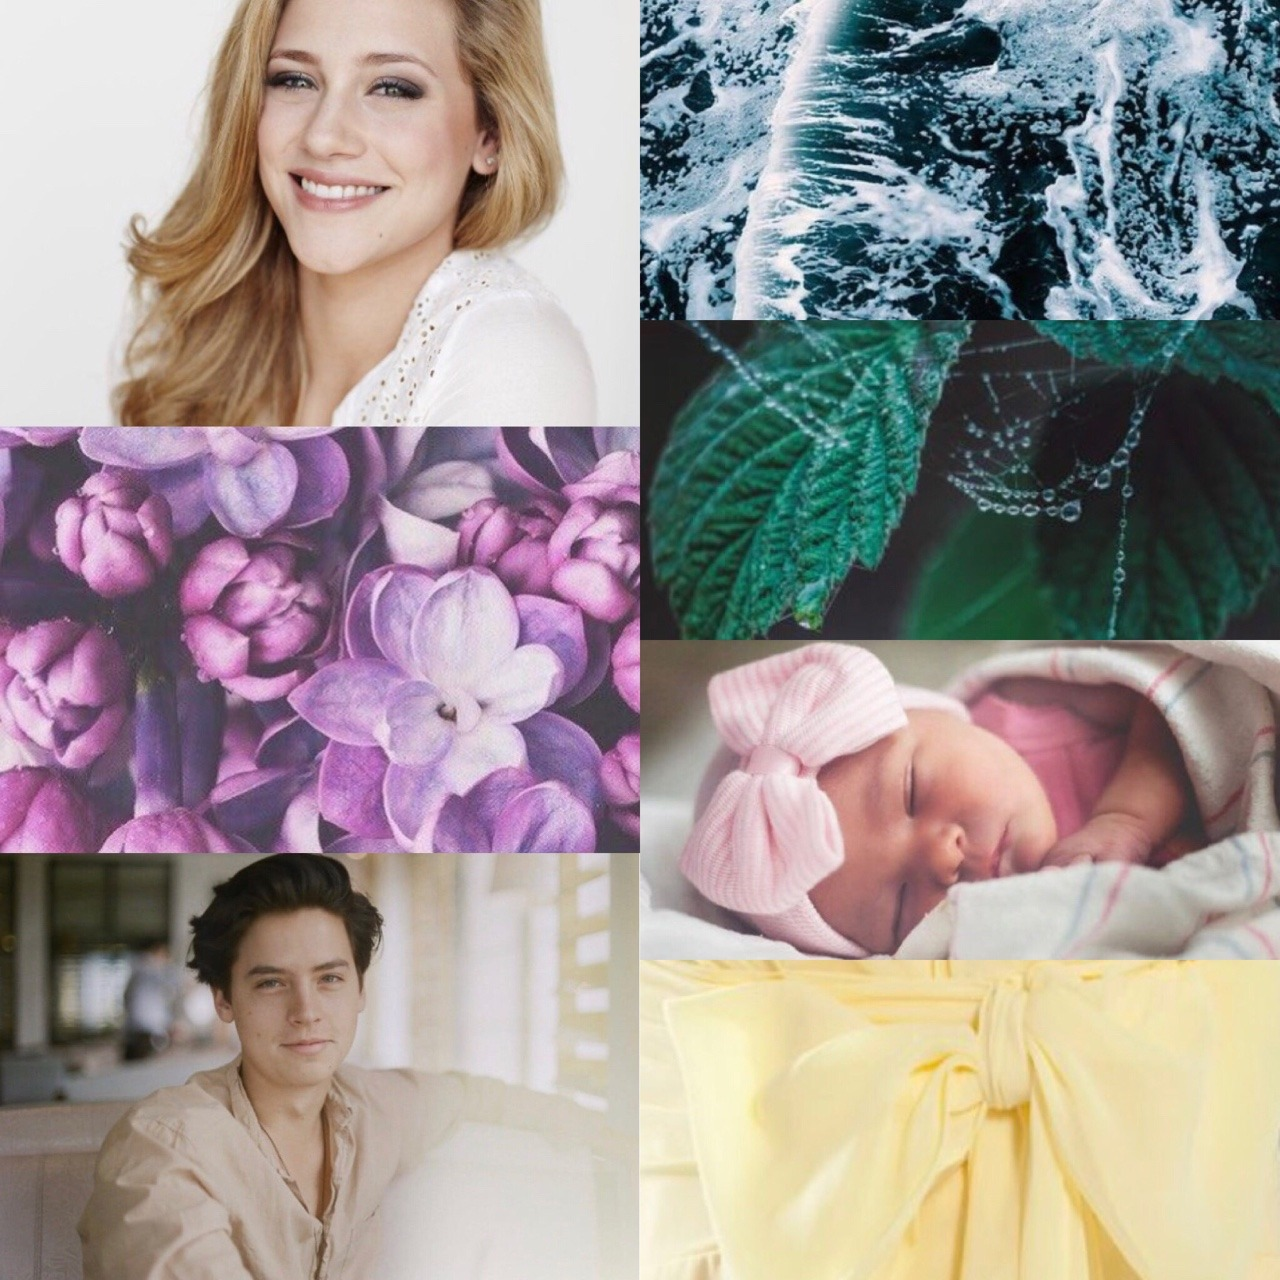 Baby Rose Fanfiction